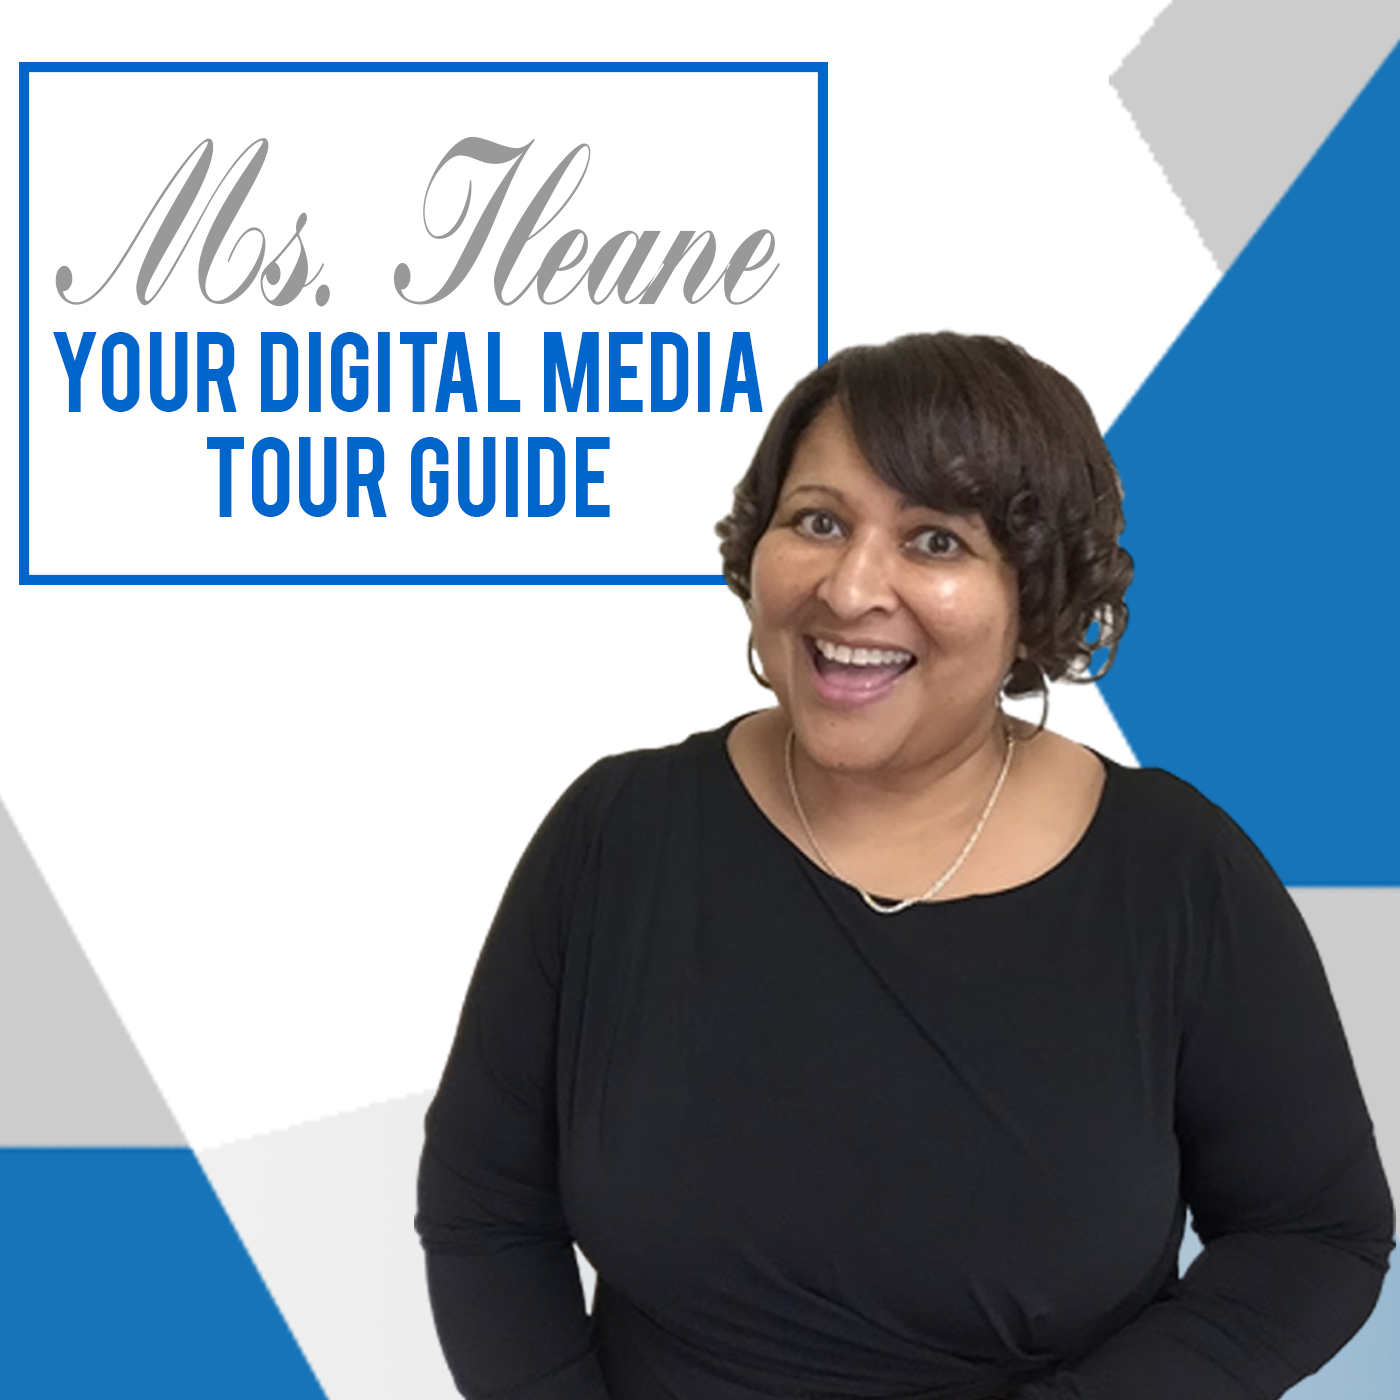 Ms. Ileane Speaks | Your Digital Media Tour Guide